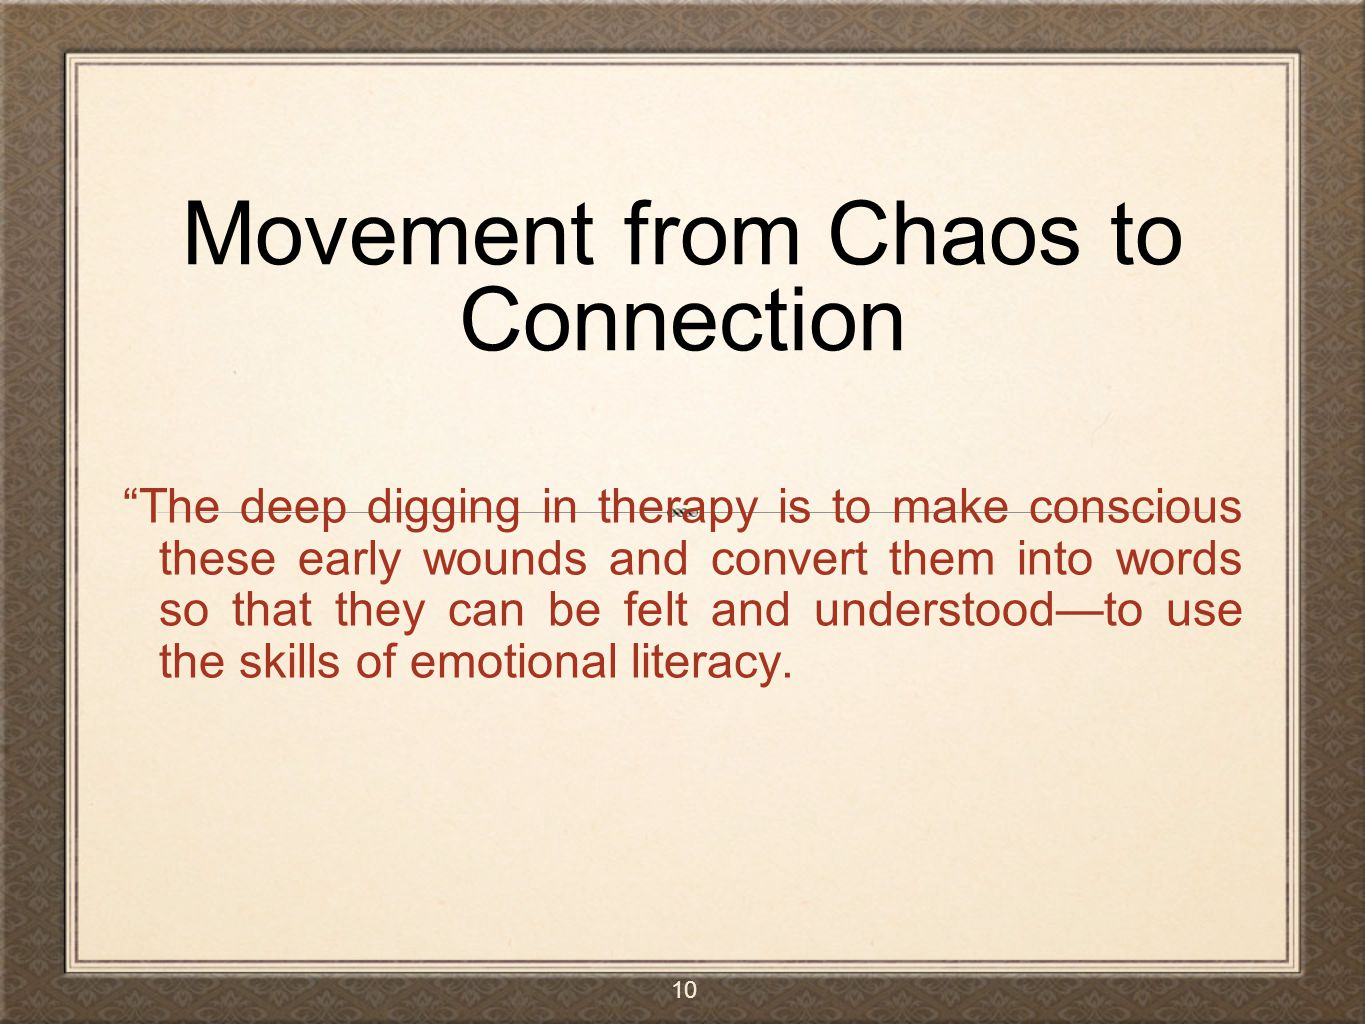 Movement from Chaos to Connection